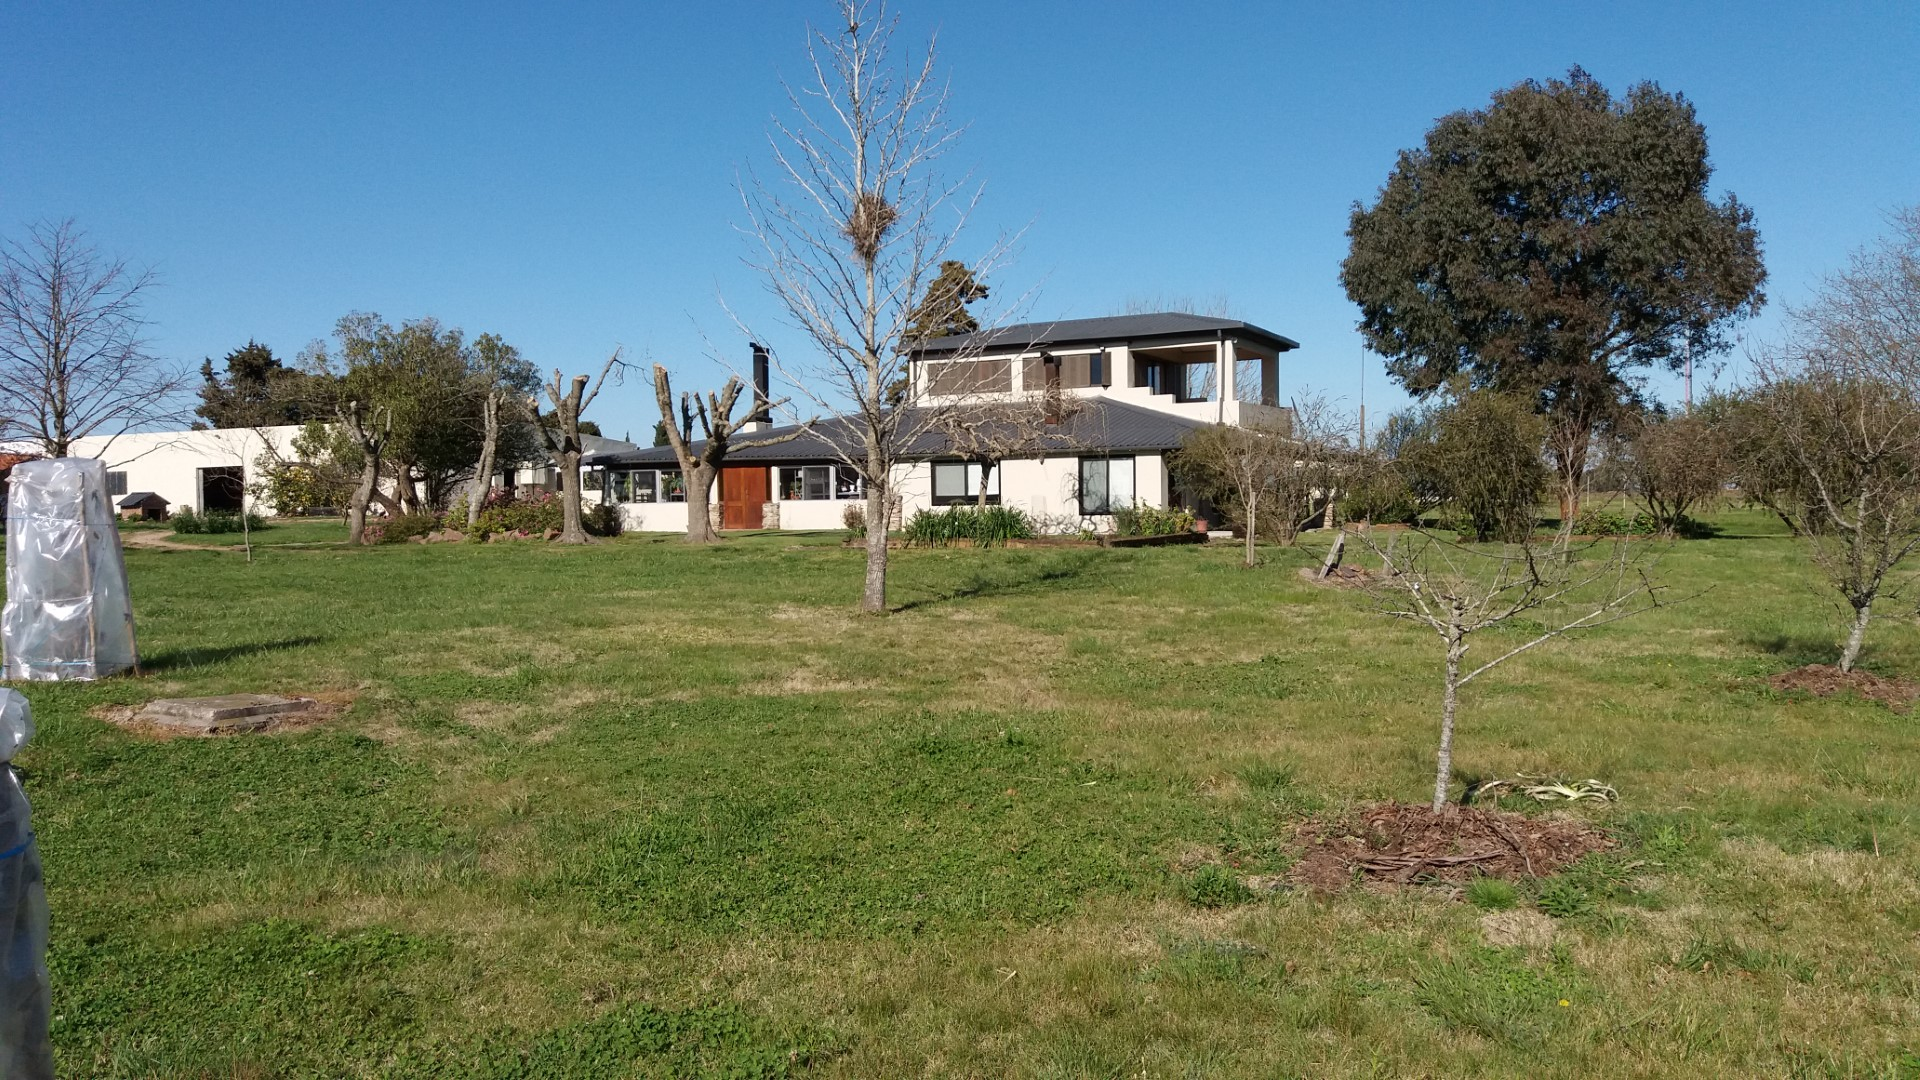 Delightful country home on 60 acres of land on the outskirts of Montevideo